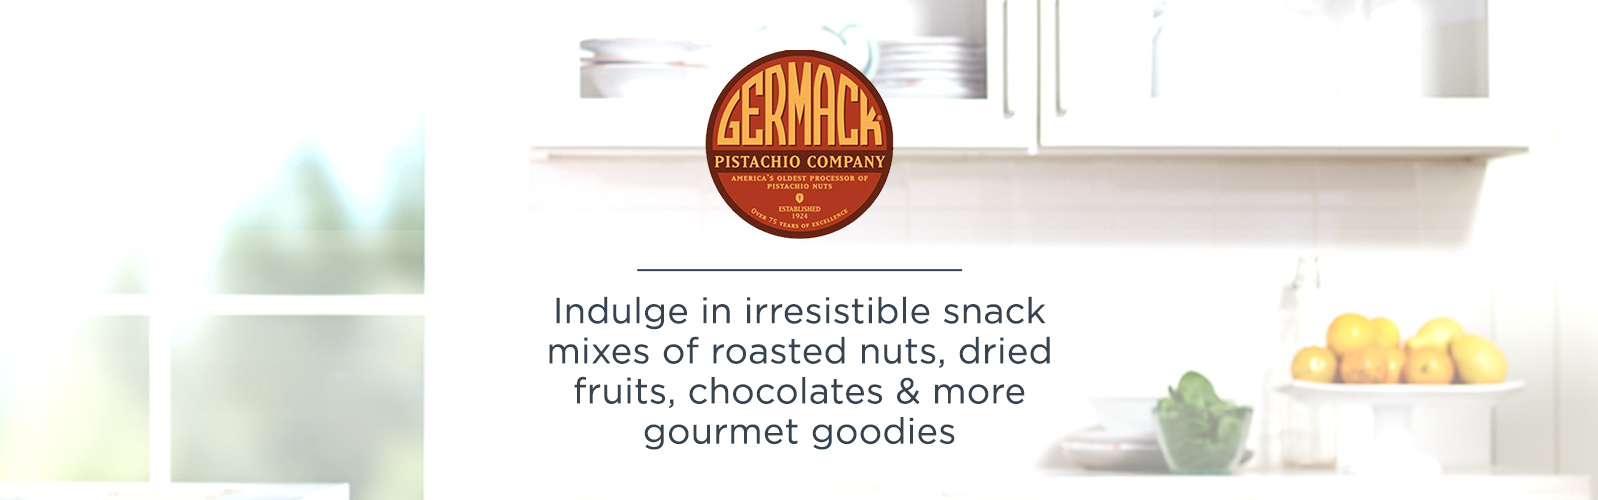 Germack. Indulge in irresistible snack mixes of roasted nuts, dried fruits, chocolates & more gourmet goodies.